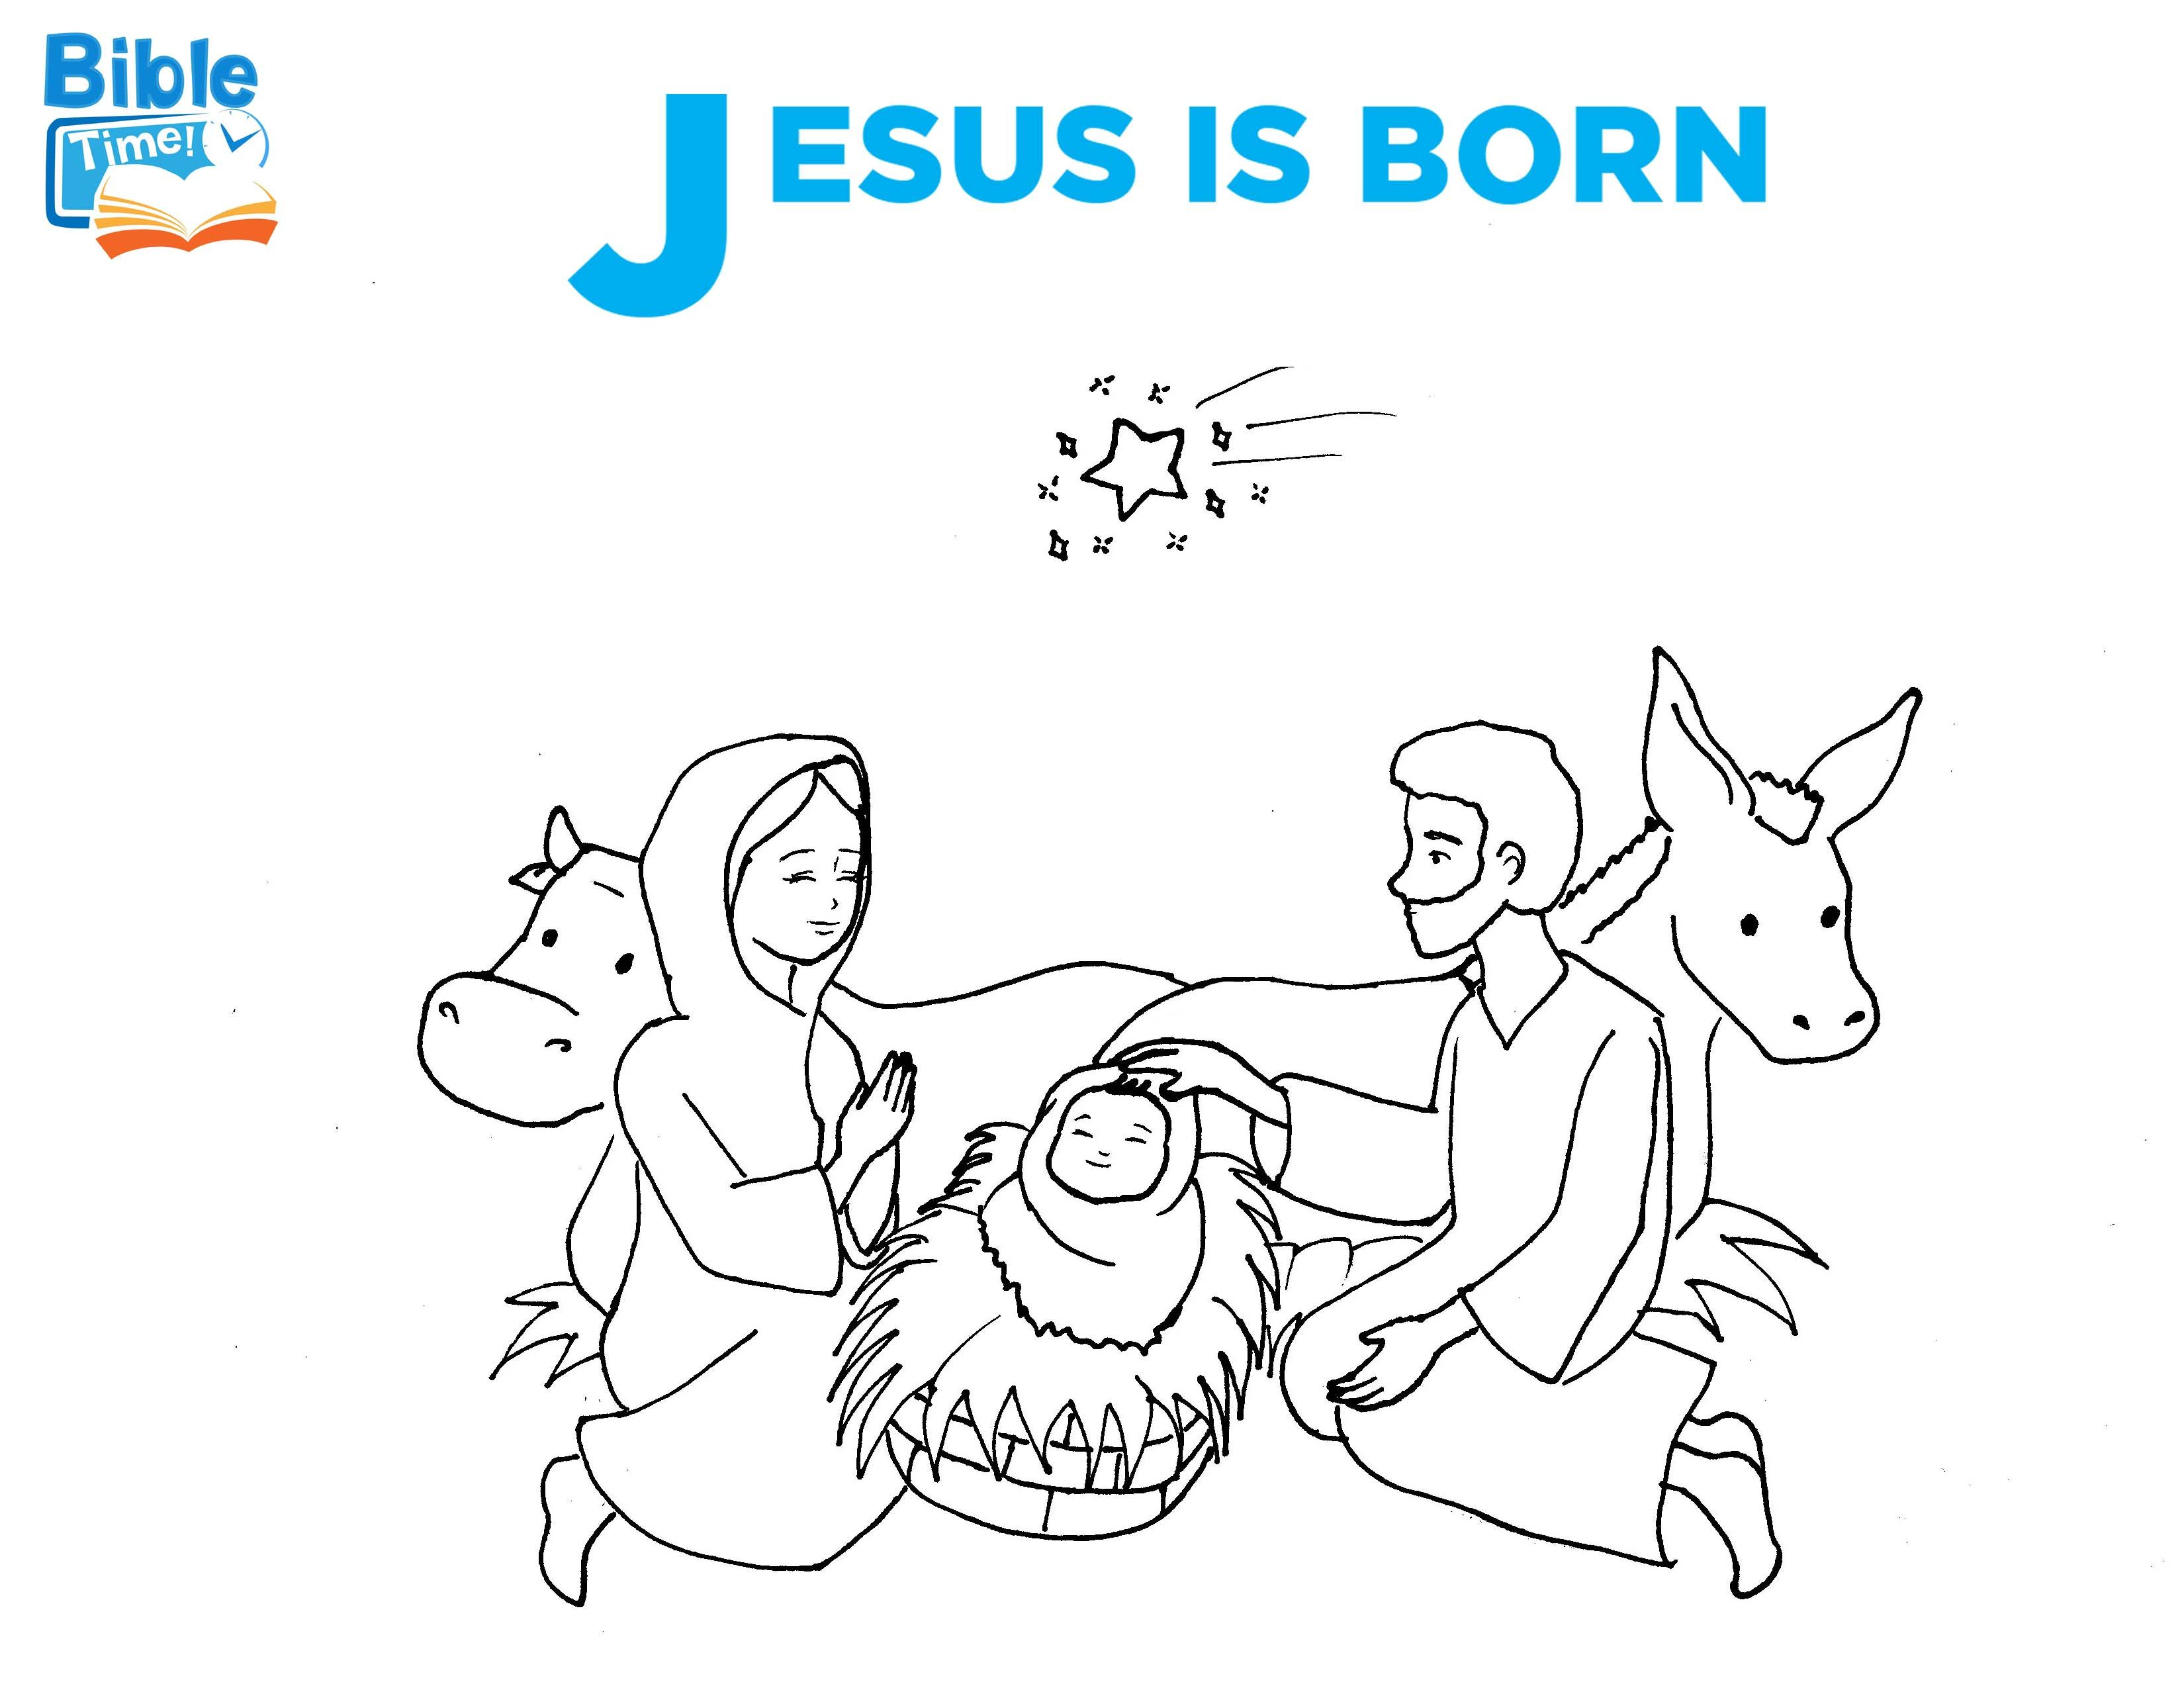 Free Baby Jesus Bible Coloring Page Coloring Sheets For Toddlers Preschoolers And Kindergartners Childr Bible Coloring Pages Bible Coloring Coloring Pages